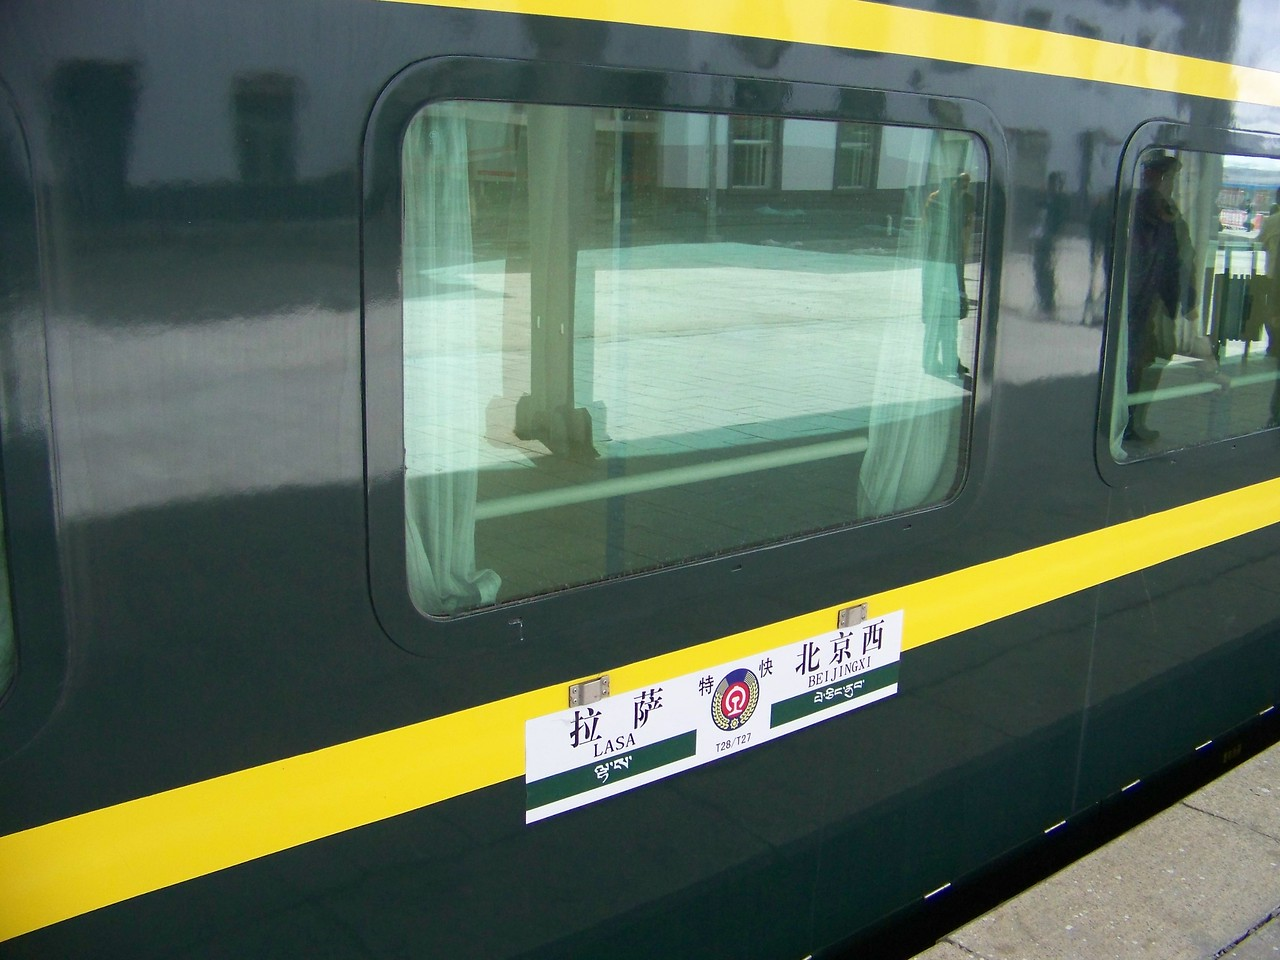 0103 - One of Our Train Cars on Train Trip Between Beijing and Lhasa.JPG